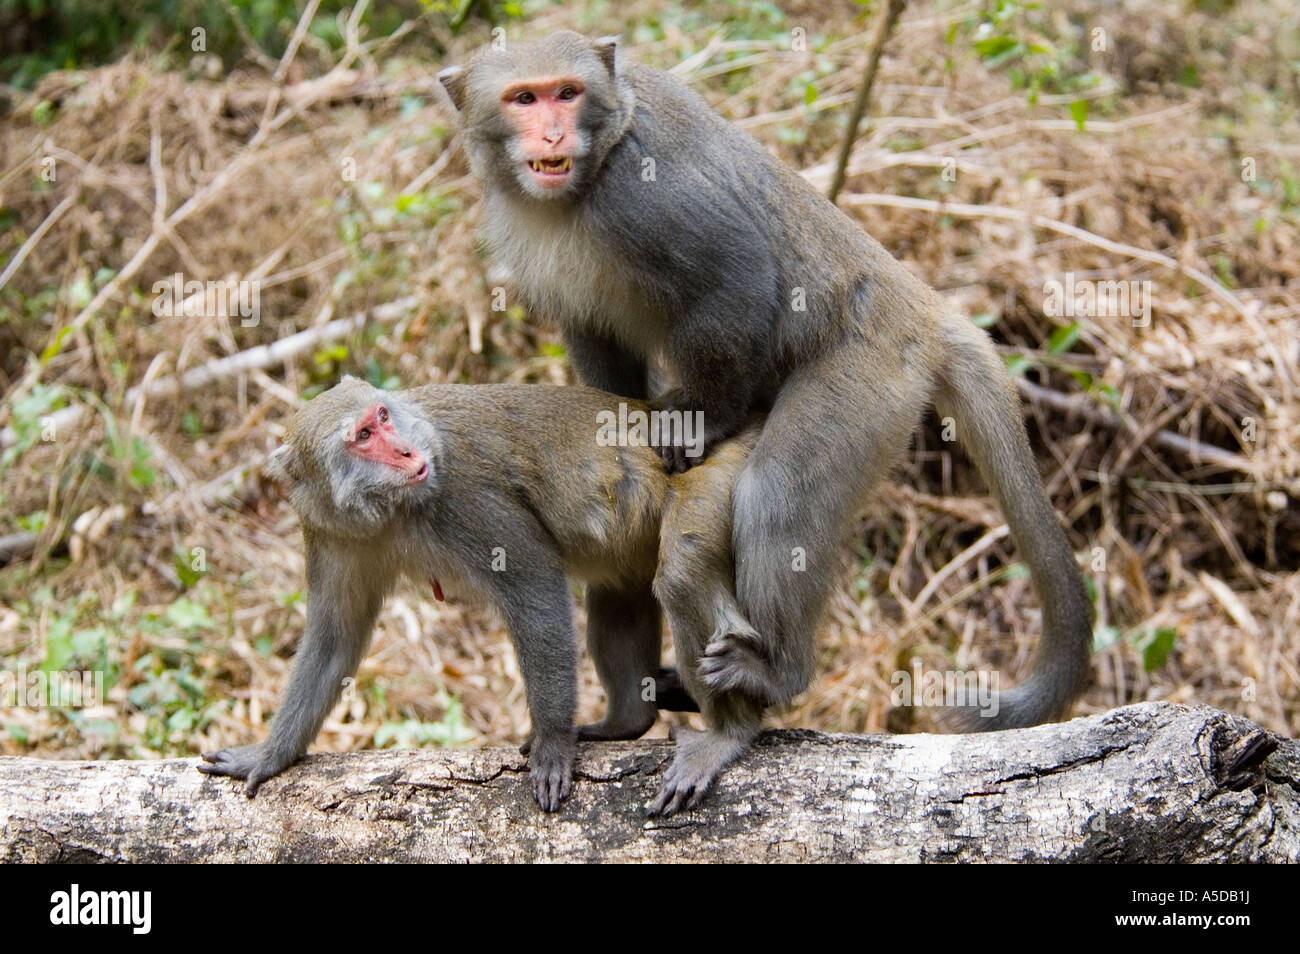 Image Gallery Monkeys Copulating